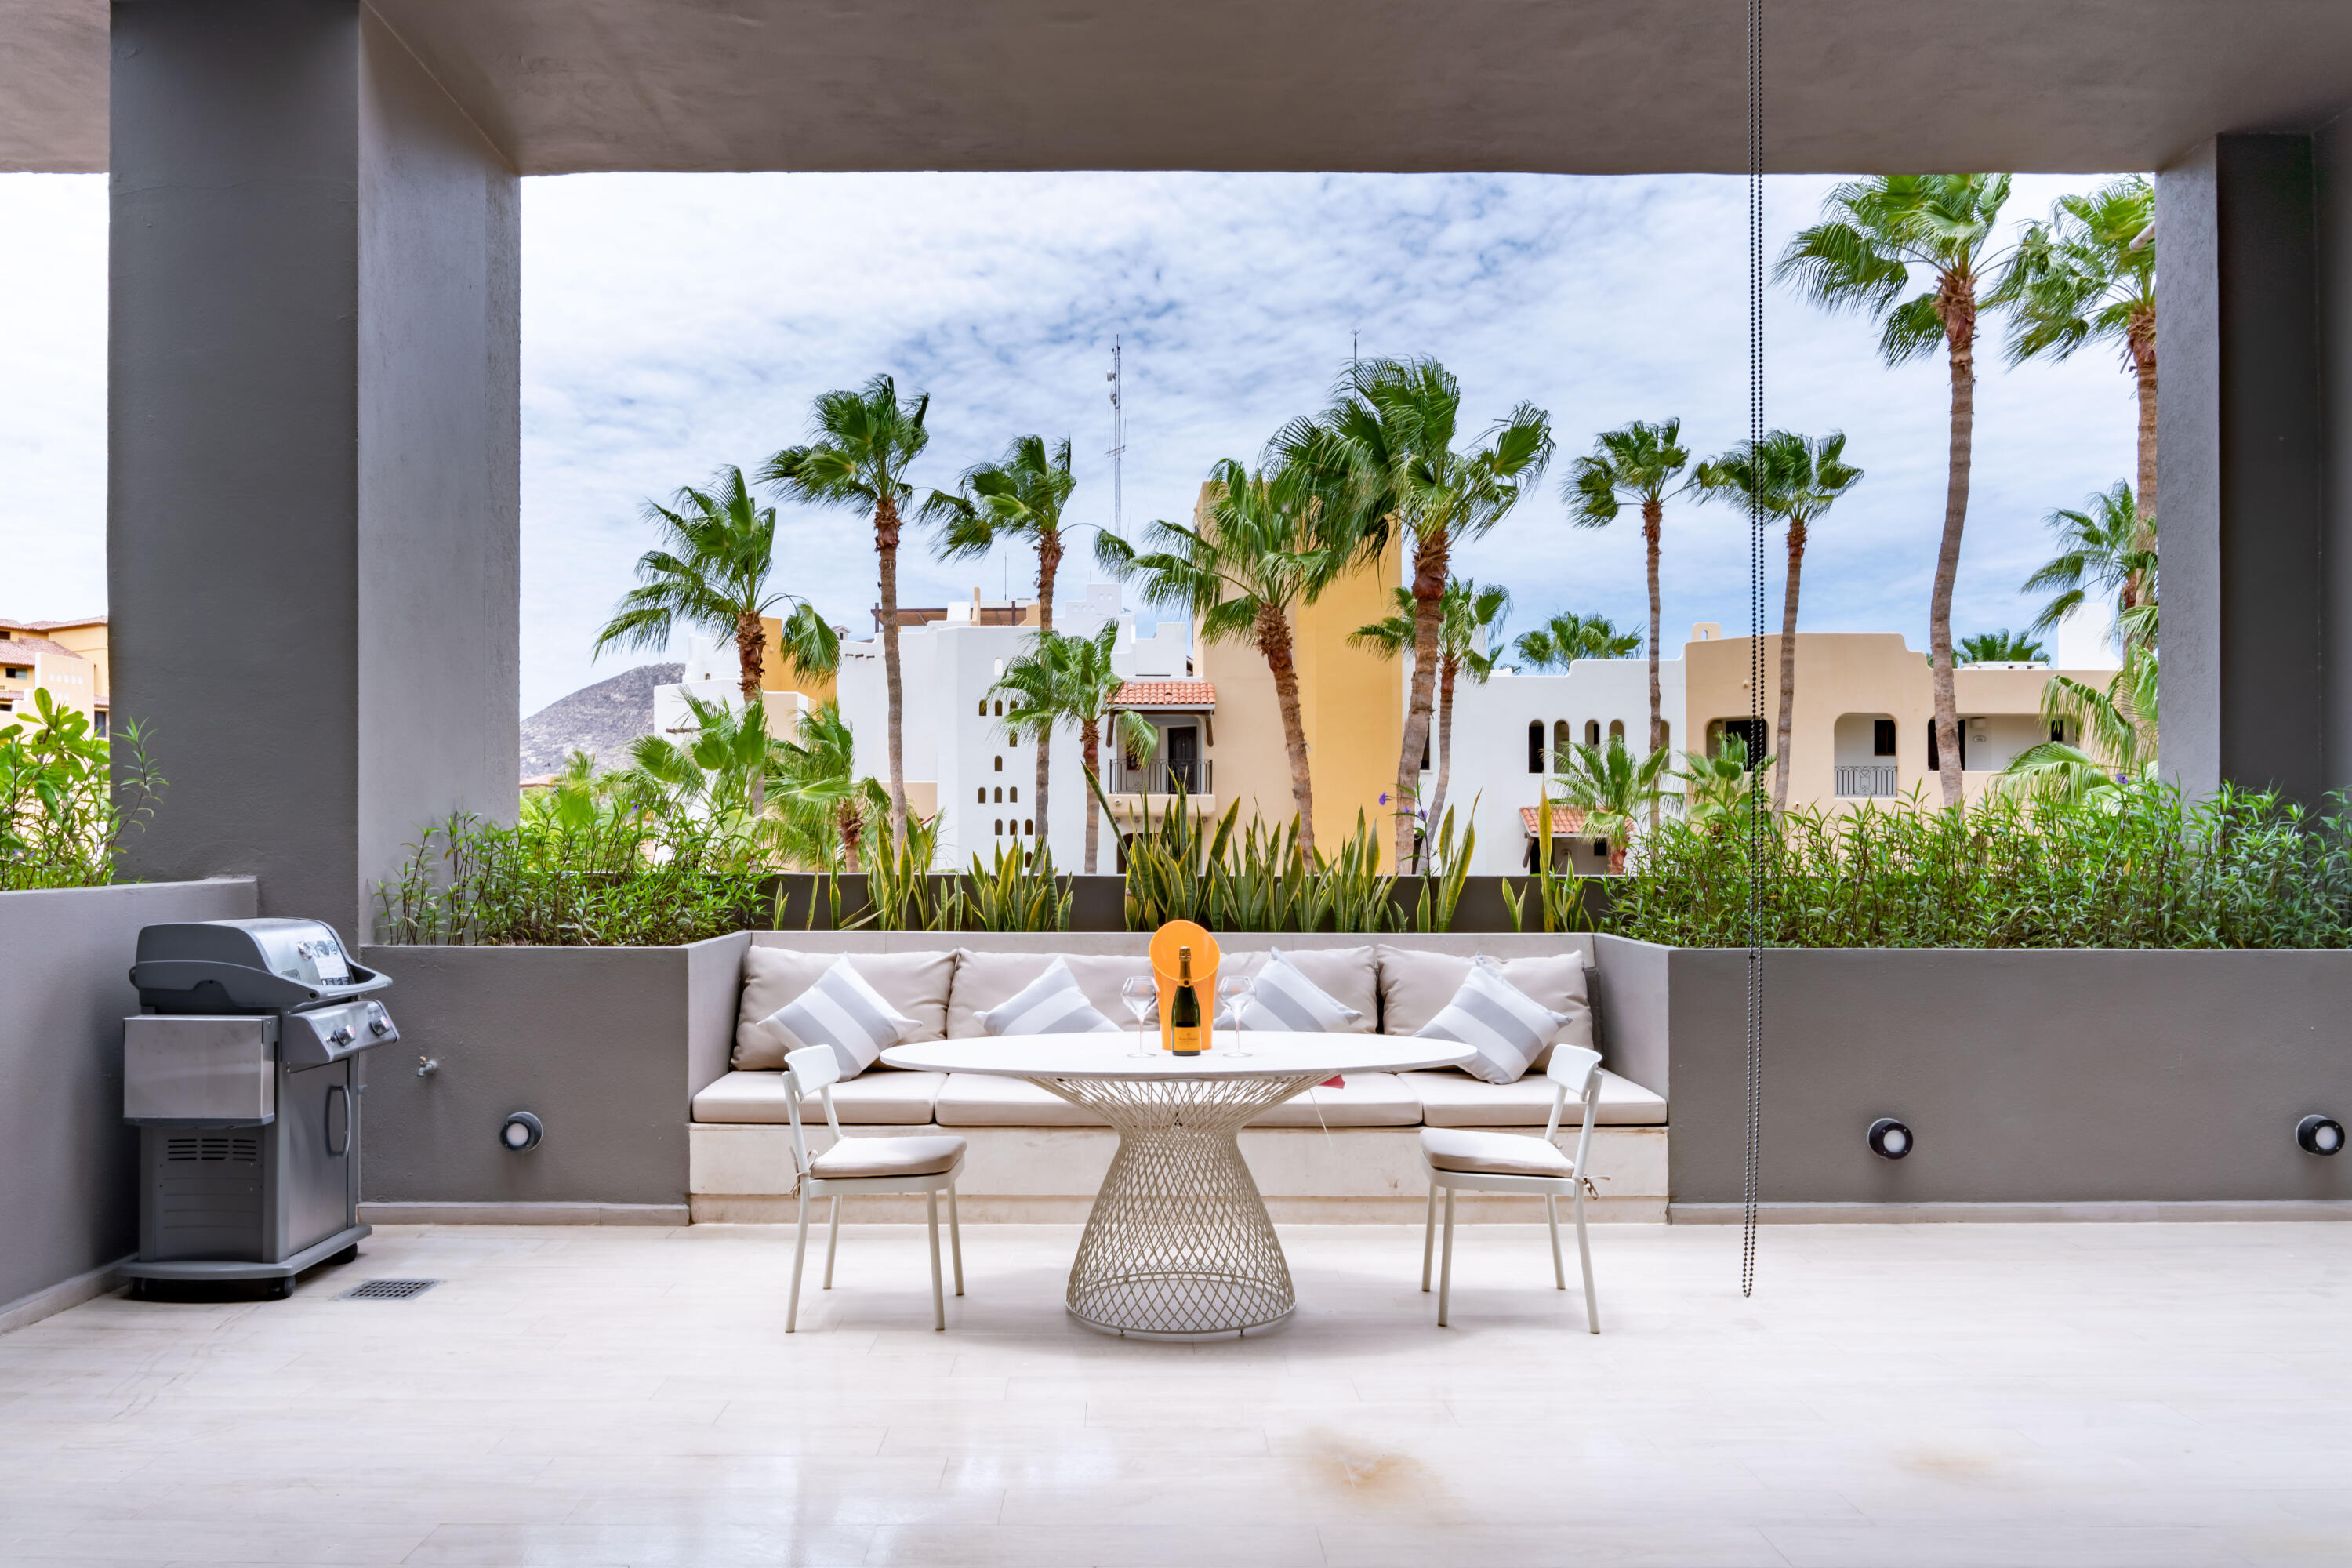 In the heart of the Marina District, is Cabo's hottest address, minutes from the sea and surrounded by shopping, restaurants and nightlife. This is more than a resort; this is life on the adventurous side. The Paraiso Residences BLISS phase comprehends 58 Unique luxury residences floor plans, spanning from contemporary one bedroom to spacious four-bedroom homes overlooking the Los Cabos Marina. From open kitchens to intimate gathering spots. Lay down and enjoy the full concierge service included with your new residence. Watch the famous Cabo Sunset on your new rooftop terrace. Living in the heart of Los Cabos Marina, definitely has its perks. Designed to be an extension of its surroundings, these residences are ideal for those looking to own a piece of Cabo that is close to everything.